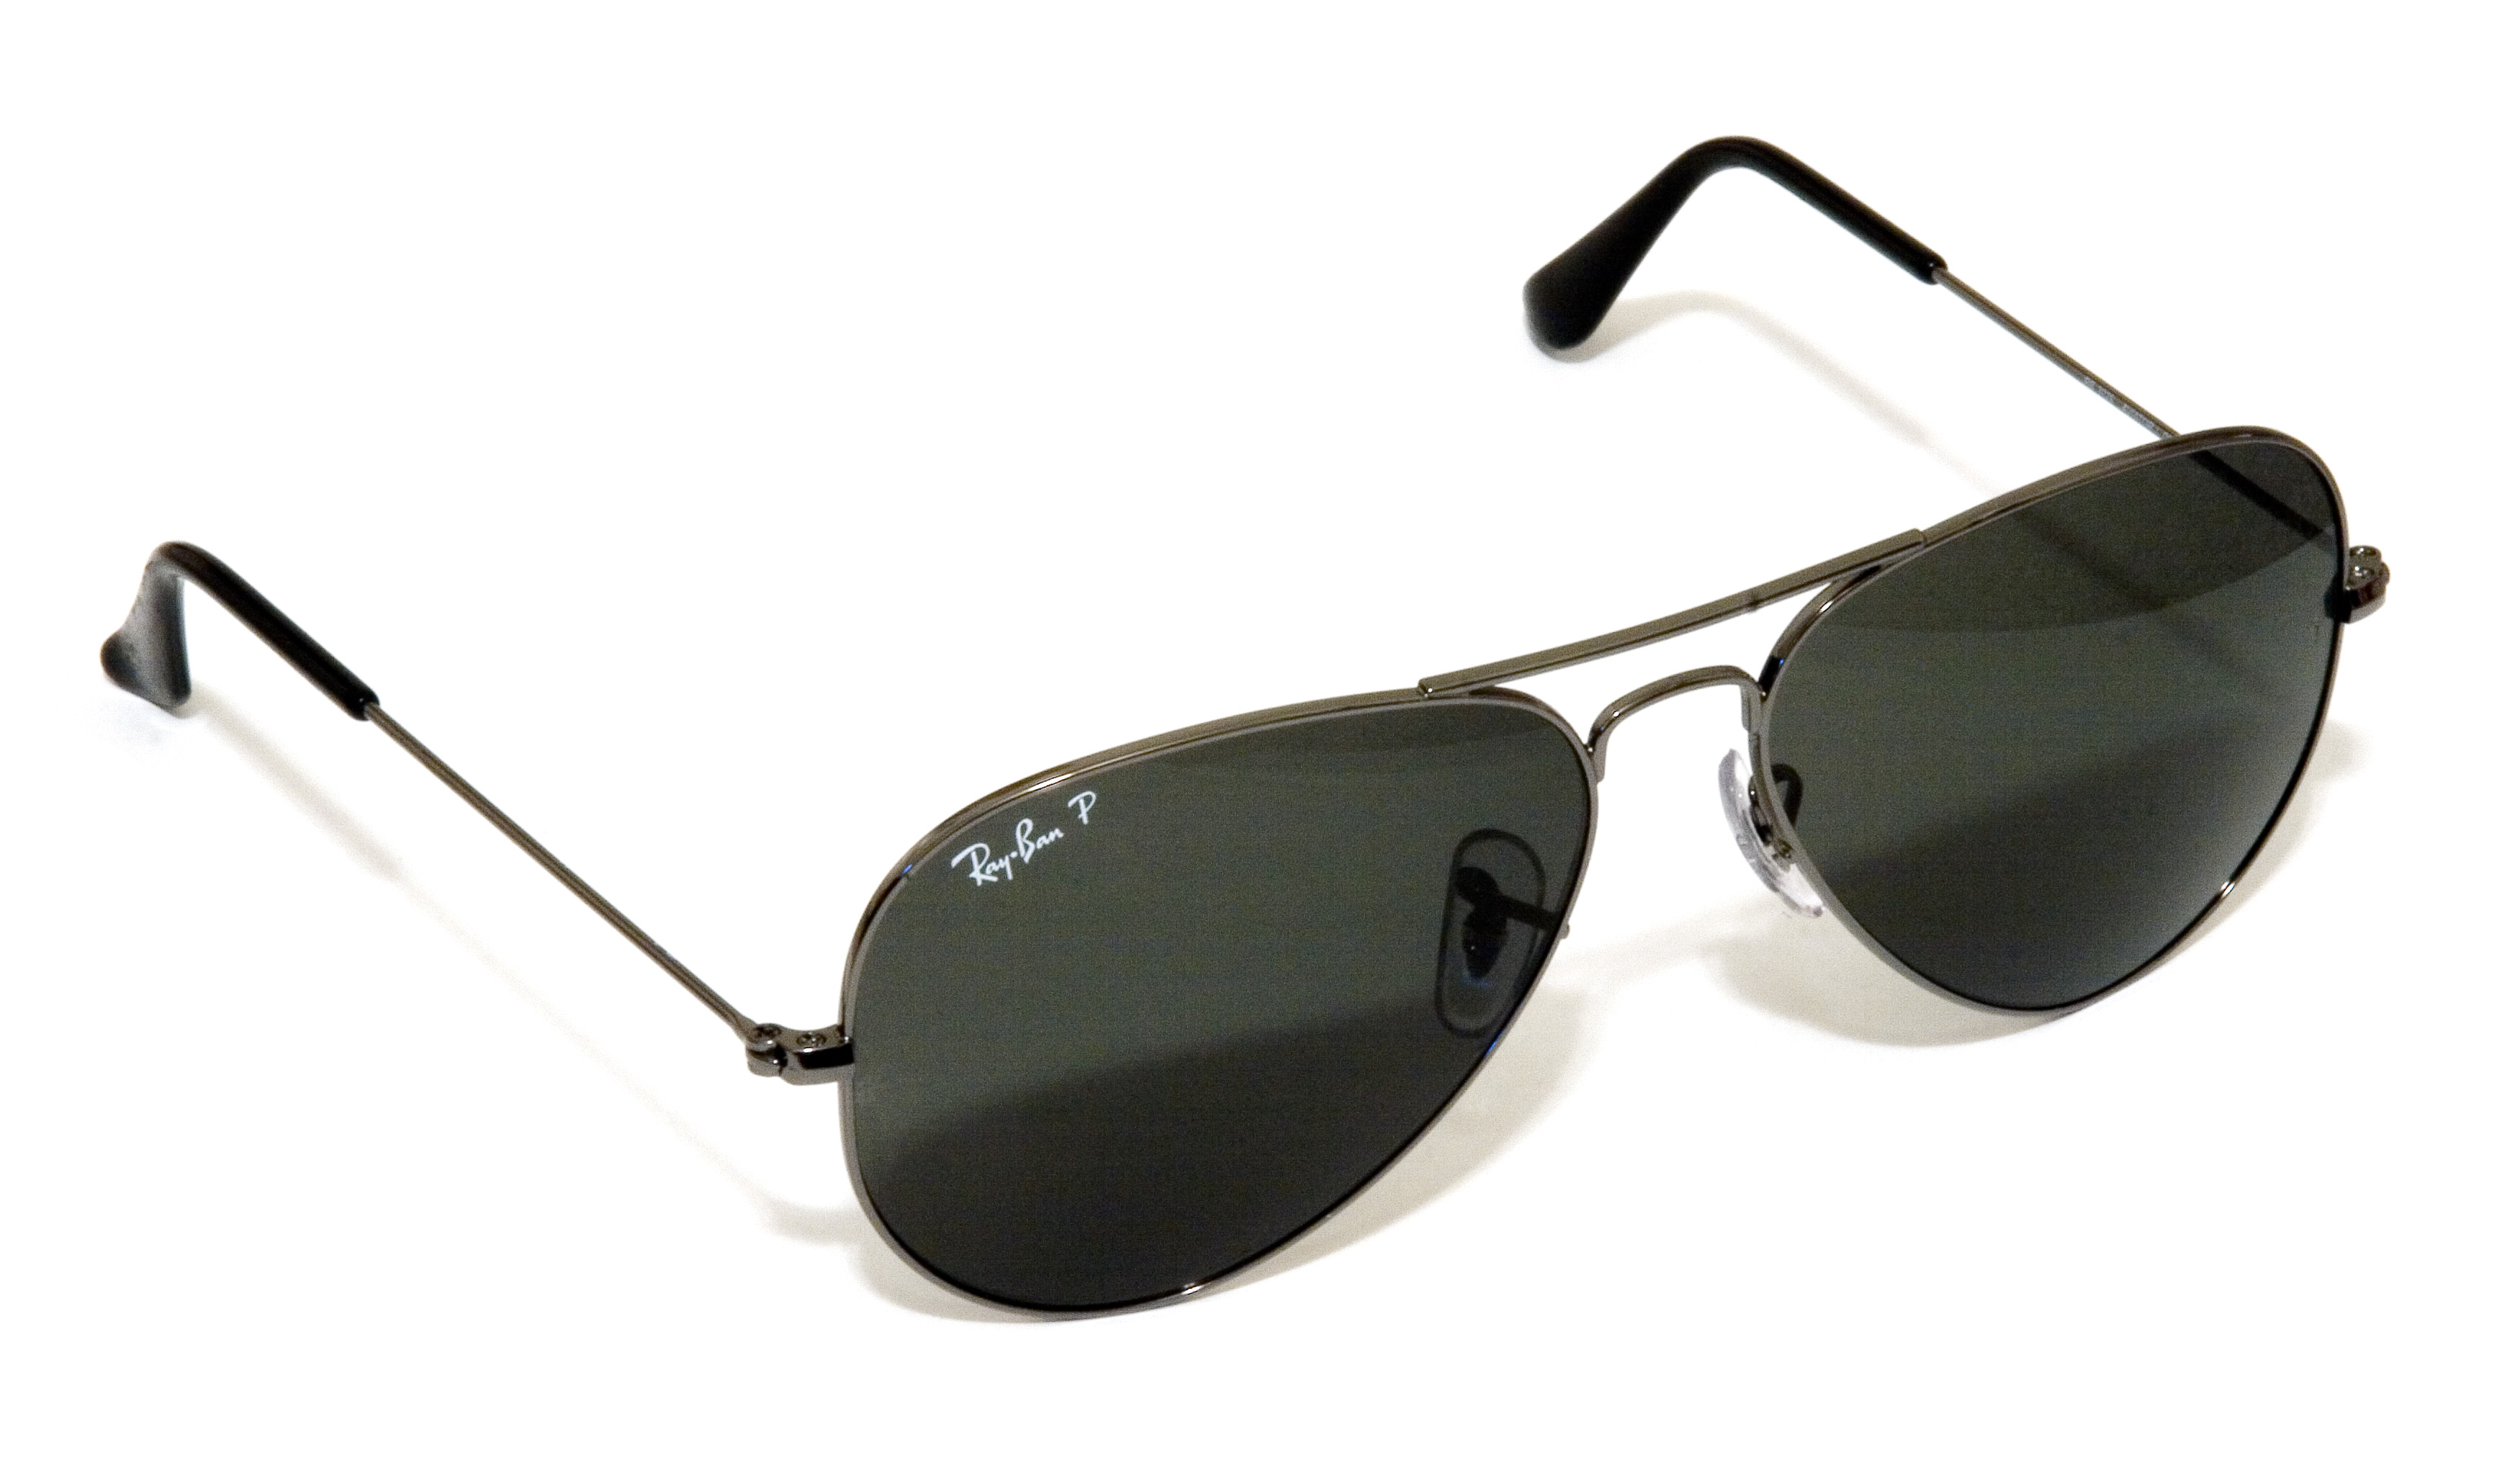 920aee5d028 Aviator sunglasses - Wikipedia